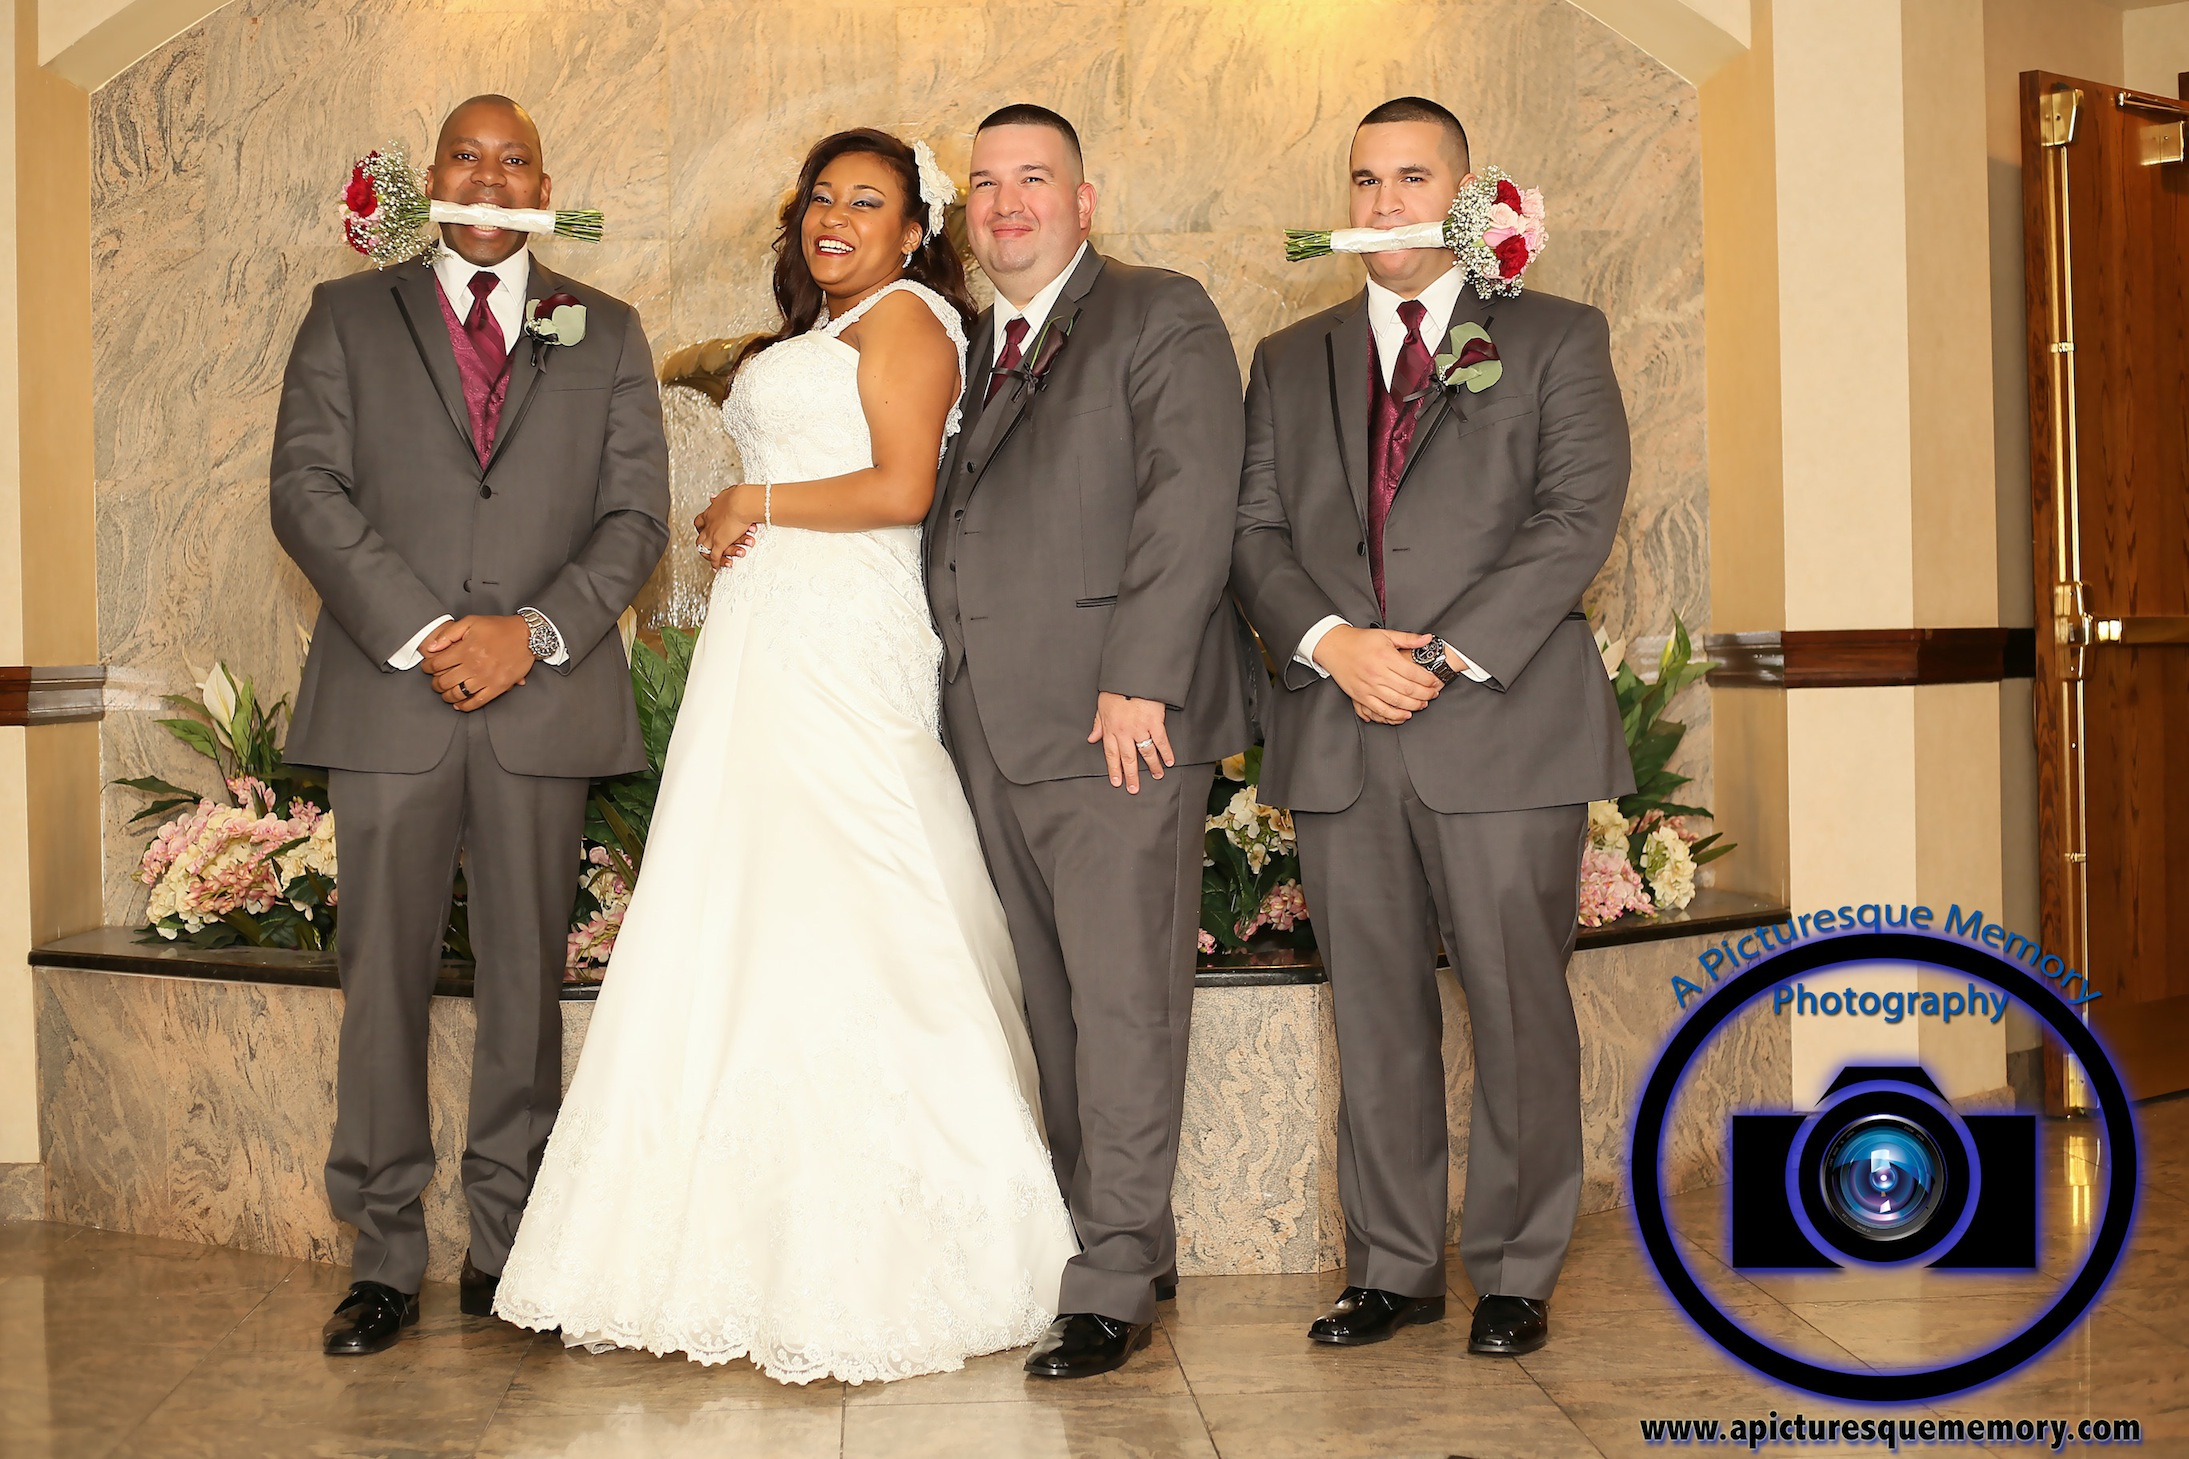 #njwedding, #njweddingphotography, #southbrunswickweddingphotographer#weddingphotos, #apicturesquememoryphotography, #pierresofsouthbrunswickweddingphotographer, #brideandgroom, #groomsmen, #greysuits